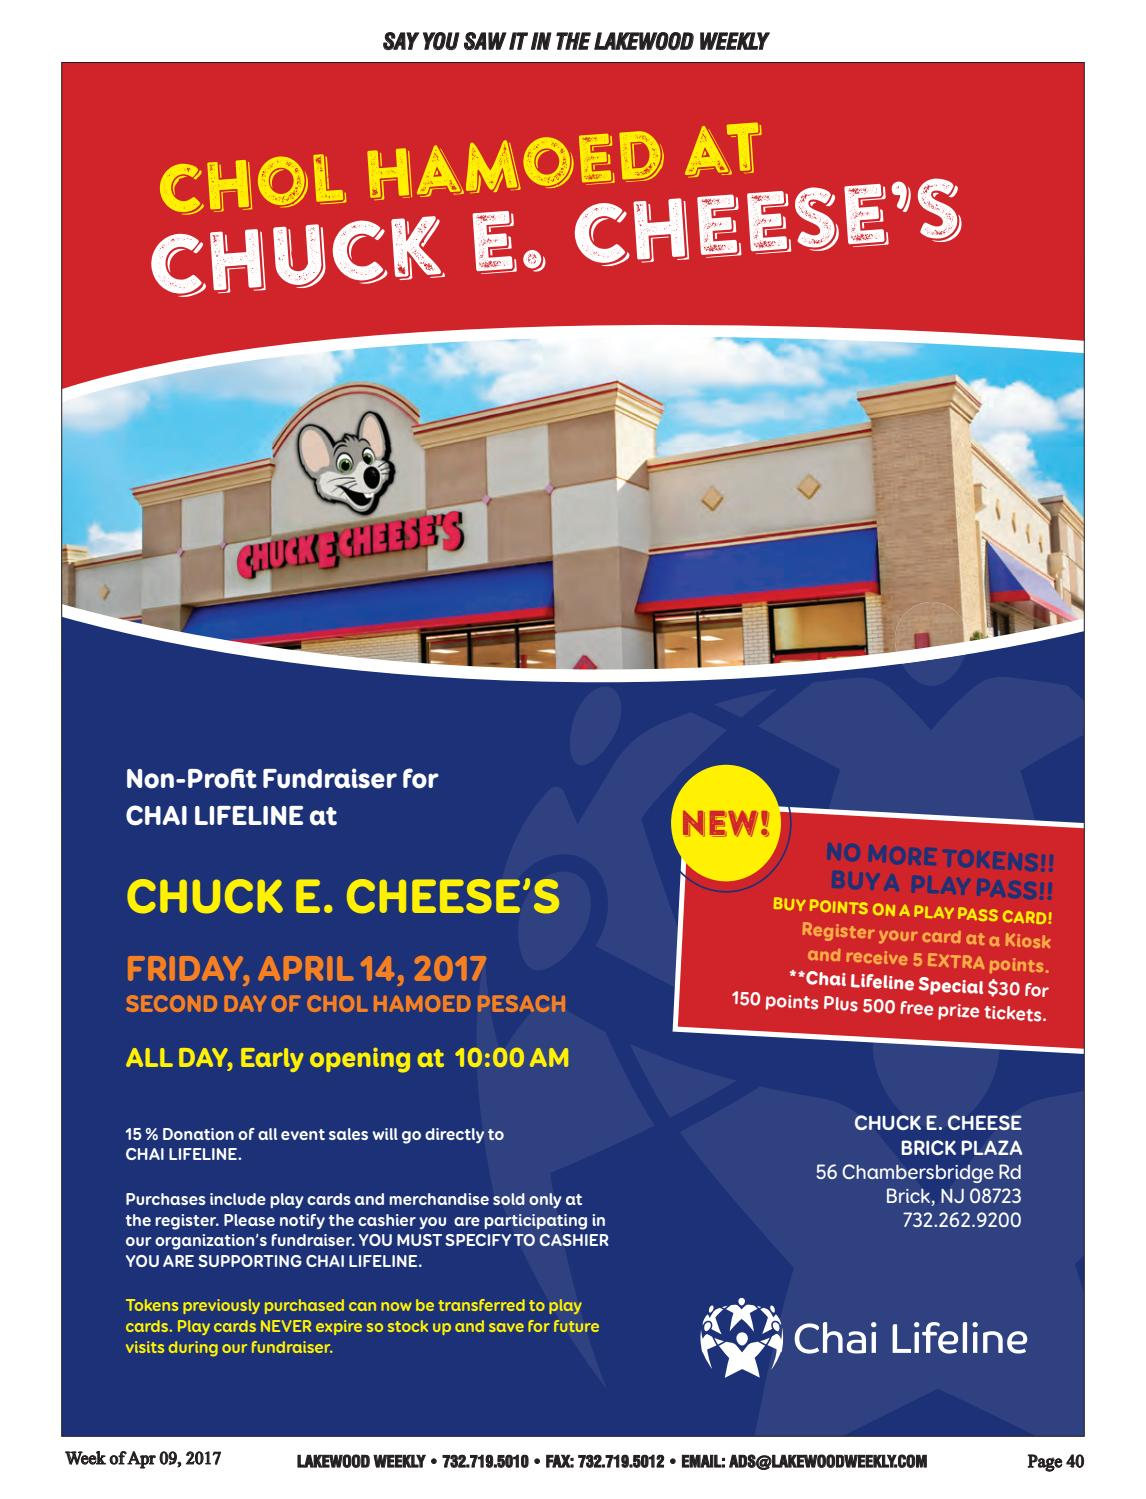 Chuck E. Cheese. For over 30 years Chuck E. Cheese has been the premiere mascot character of family entertainment restaurants. His long tenure and popularity has made him one of the most popular advertising characters of all time.